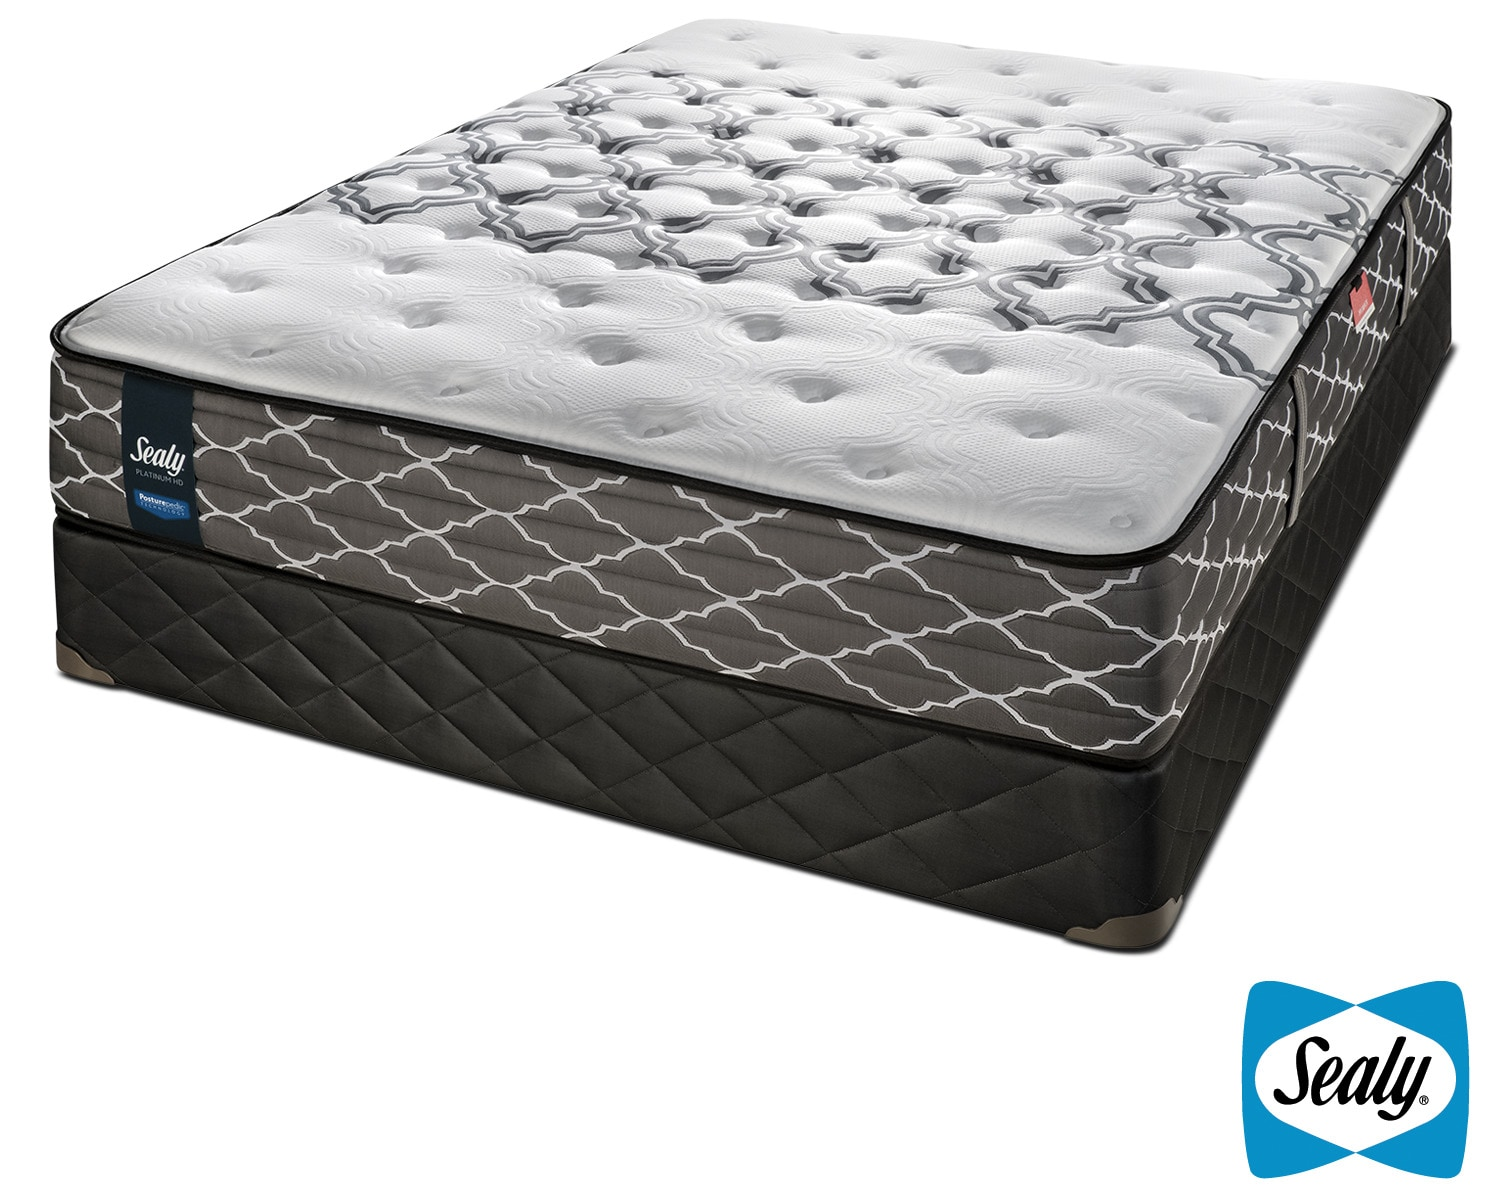 Sealy Late Night Hybrid Extra Firm Full Mattress And